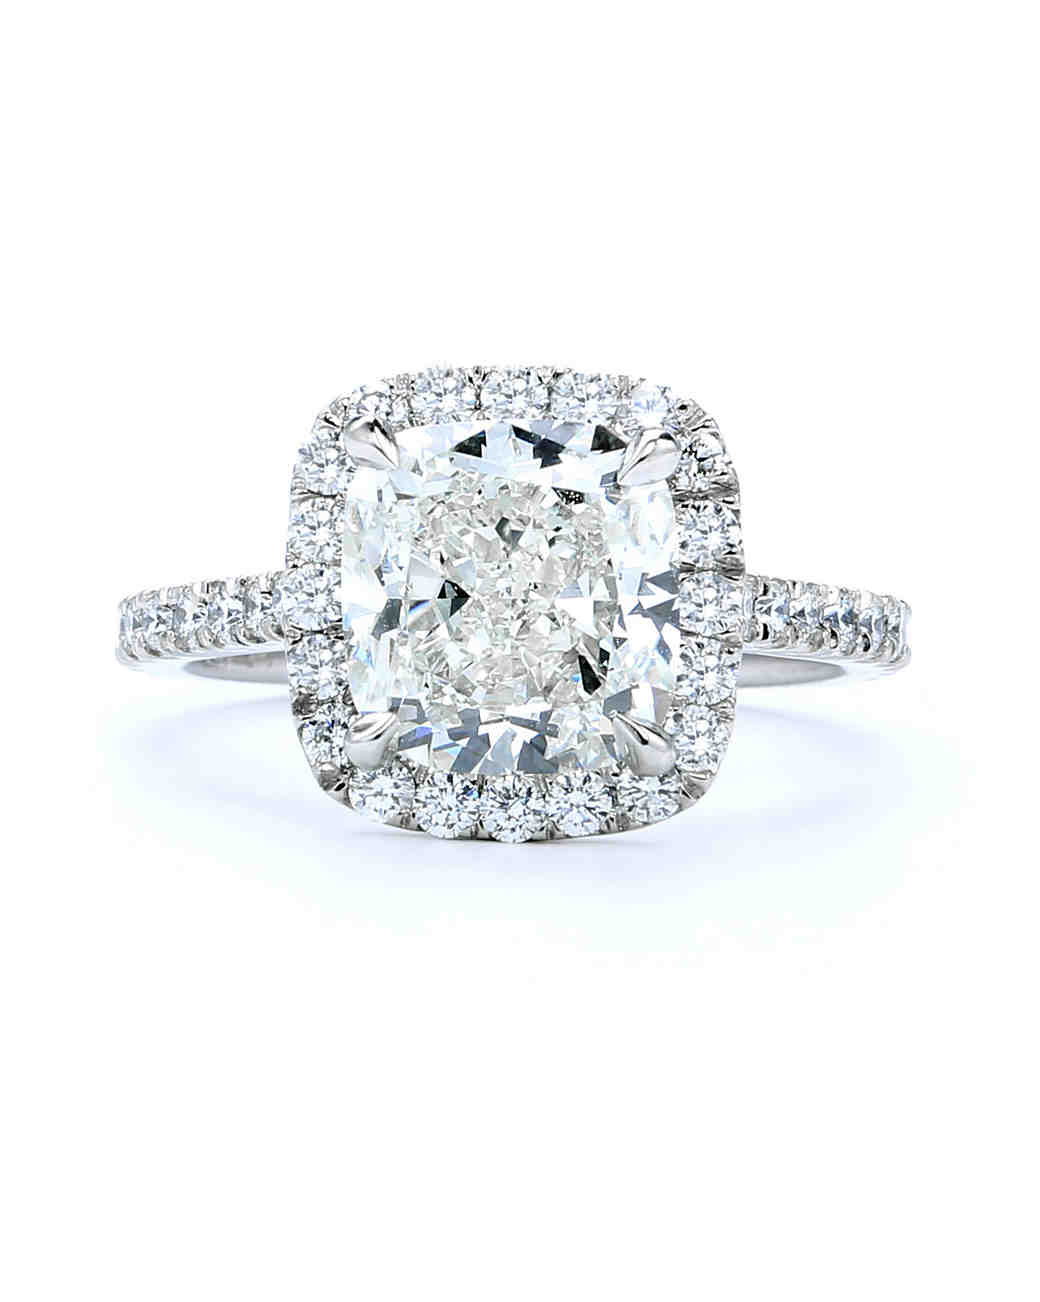 ct band co tiffany jewellery shown diamond rings with engagement wedding heart final proposal shape ring